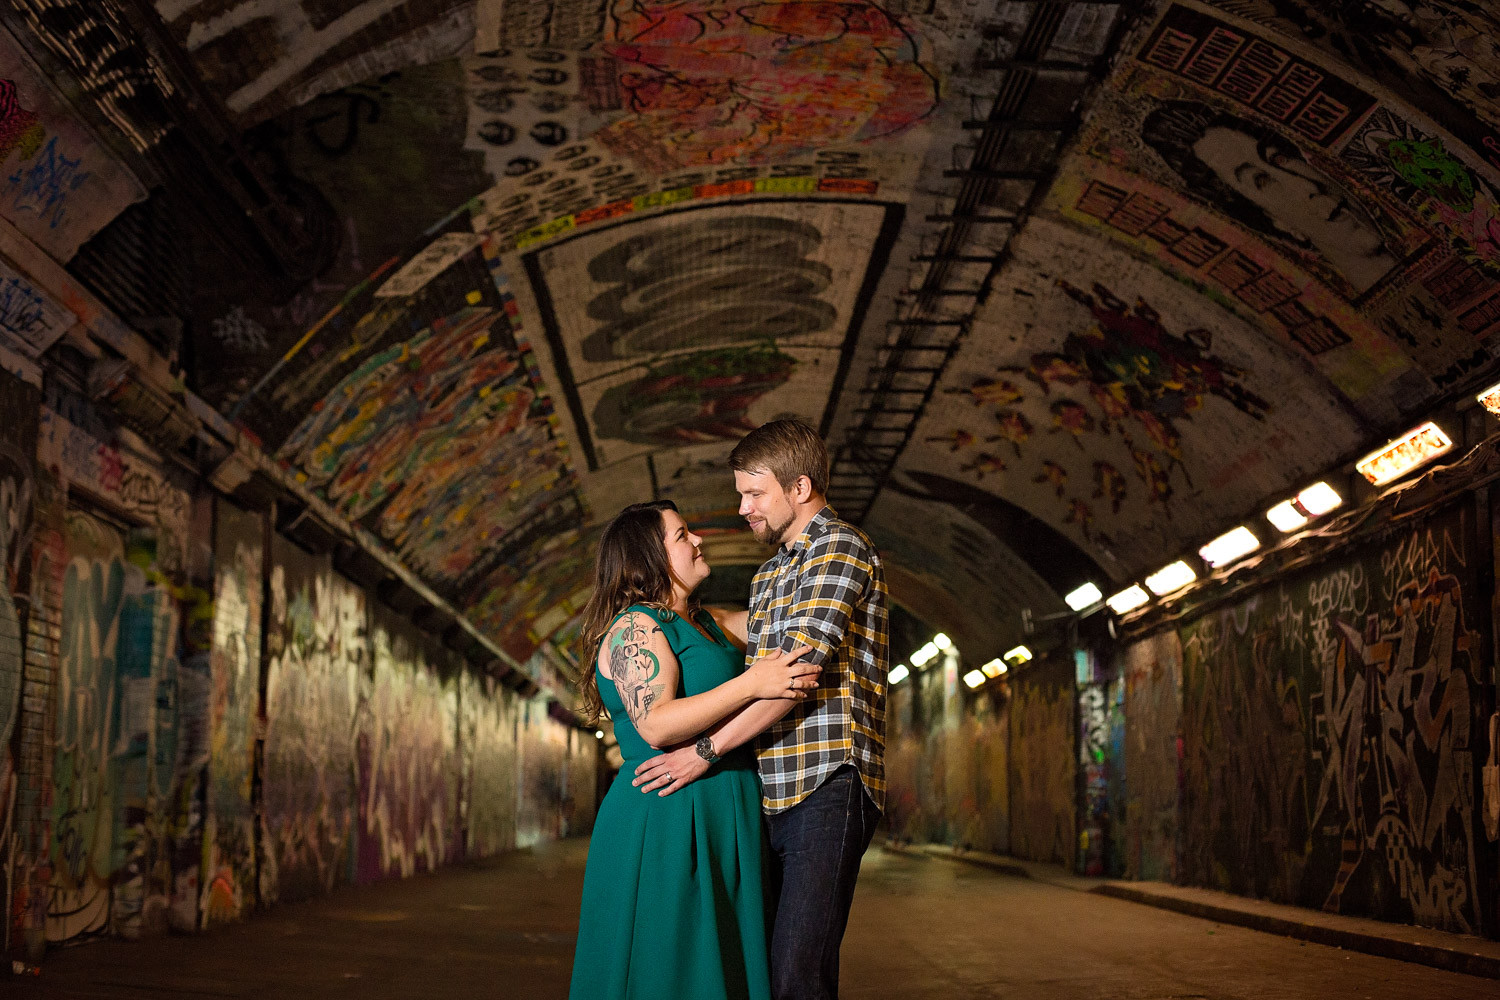 janice-peter-westminster-the-river-thames-london-engagement-17